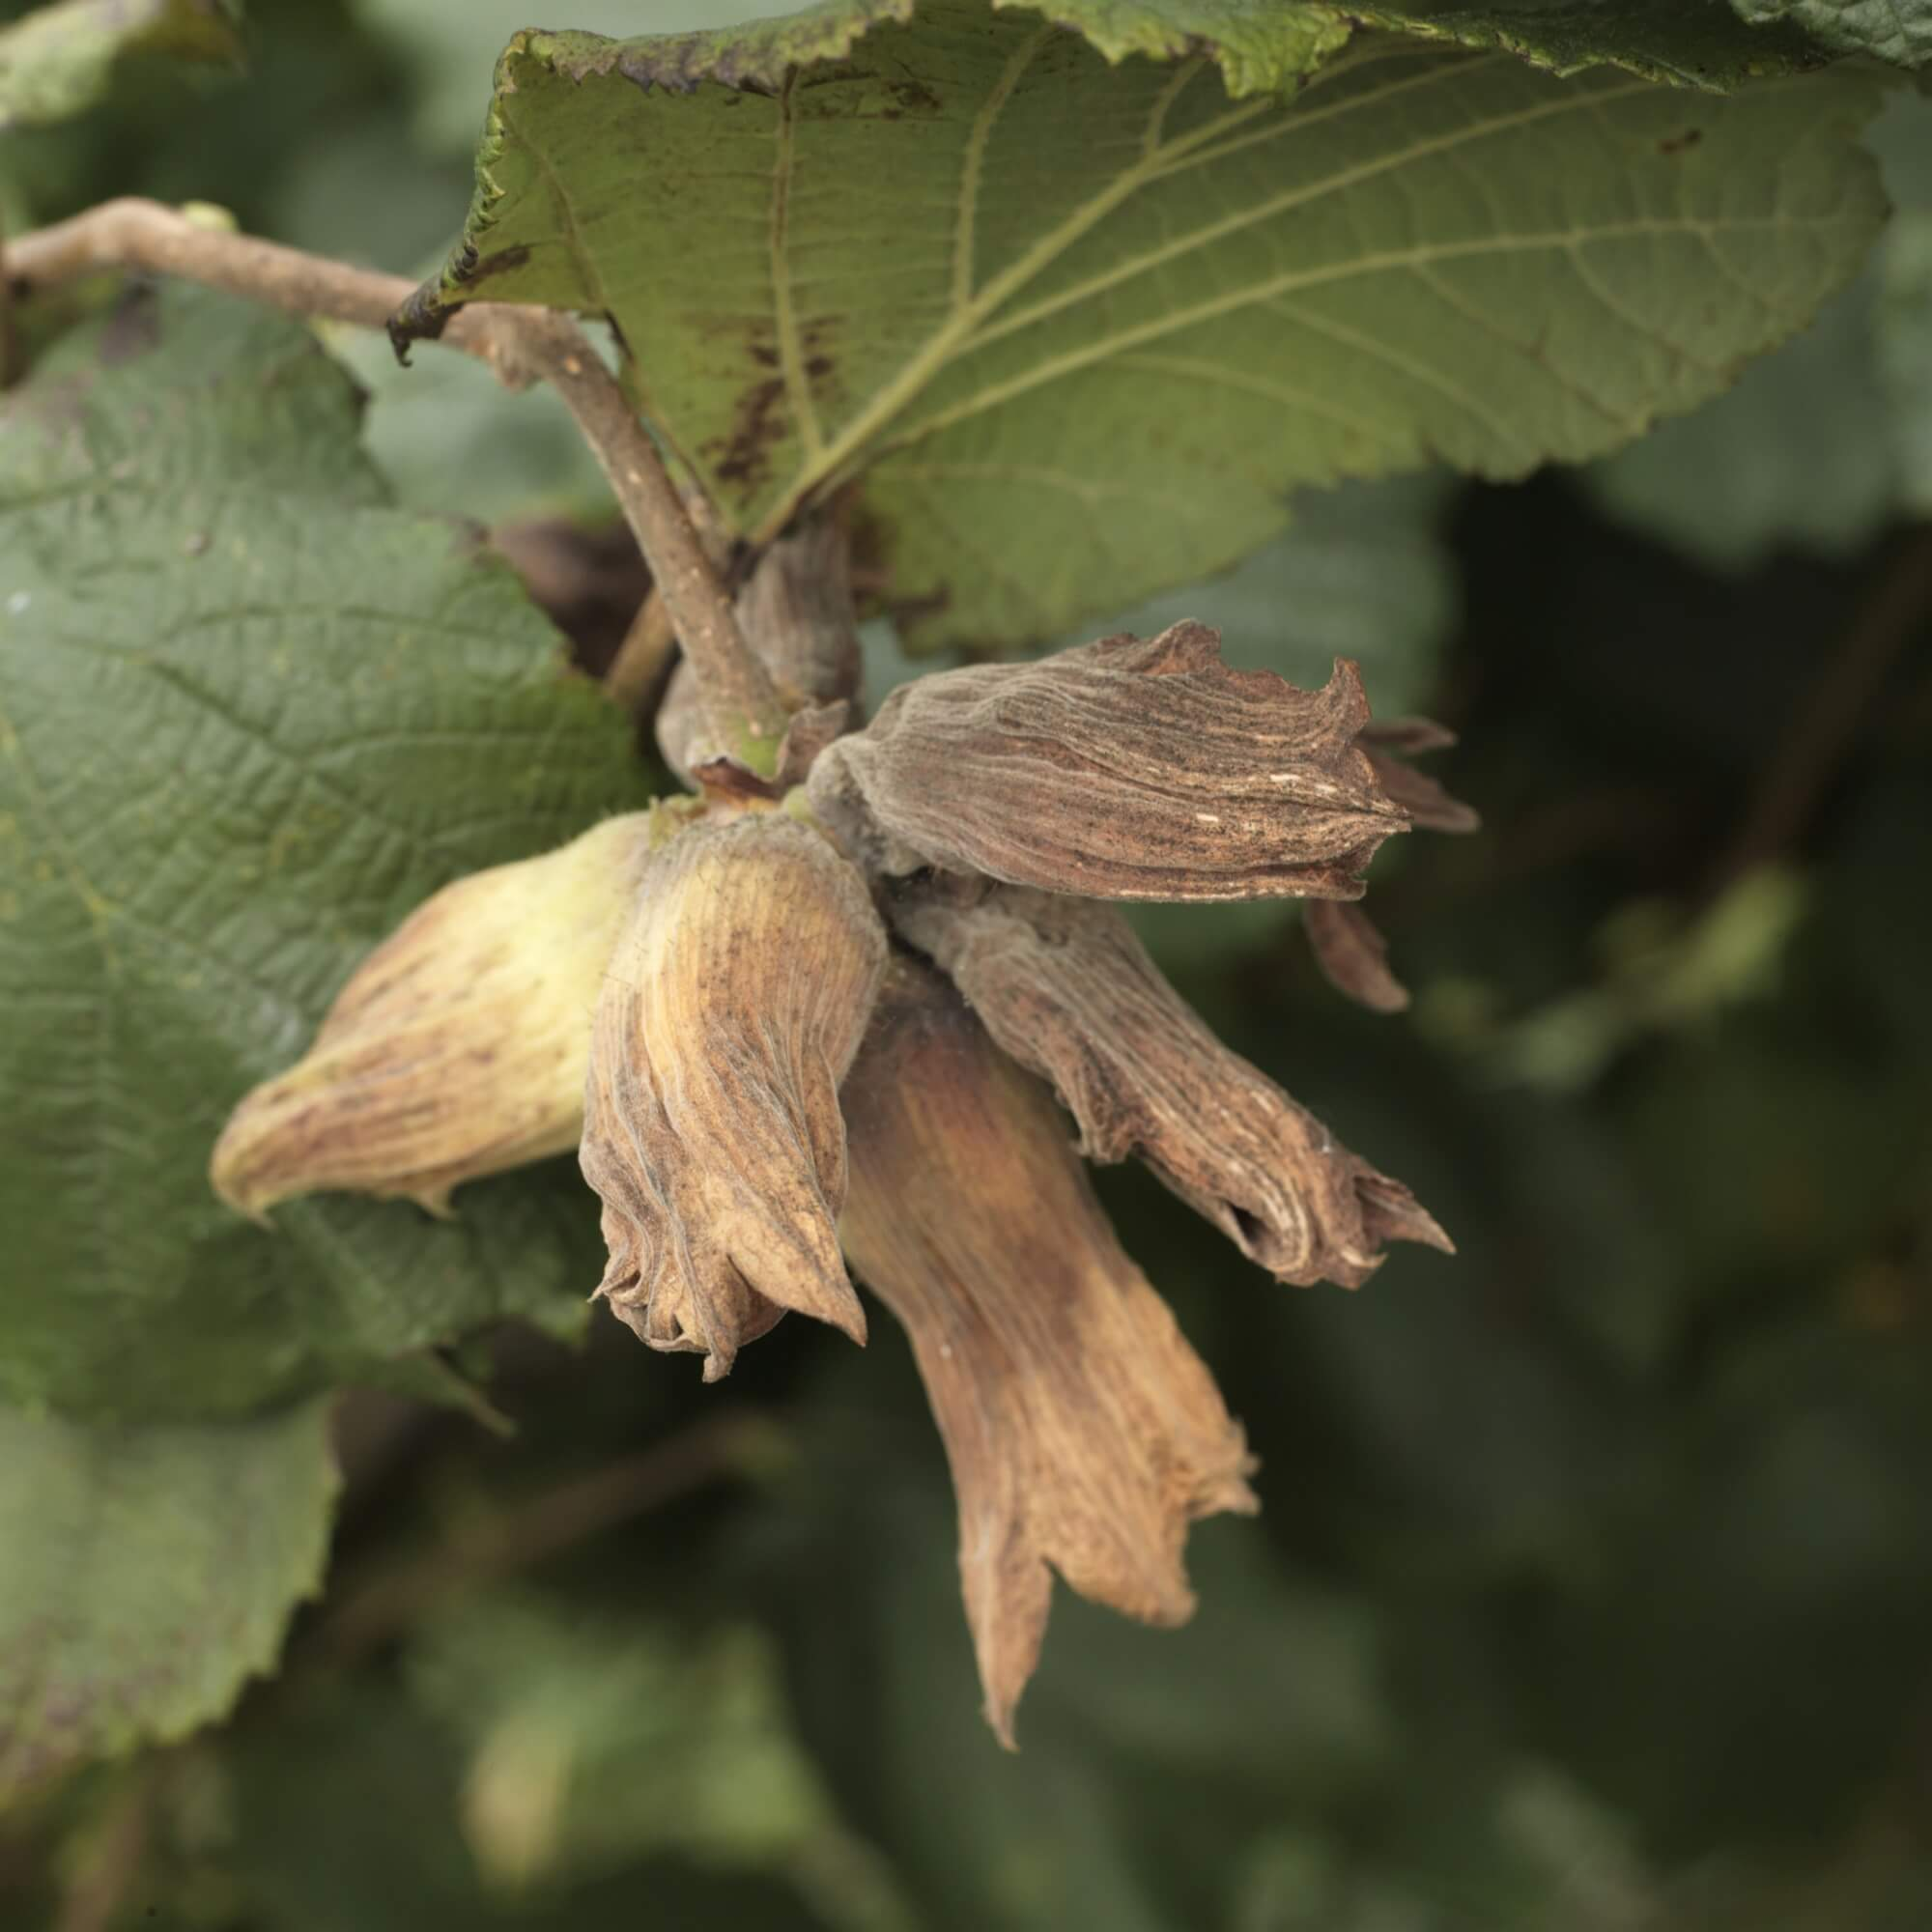 Golden Kentish Cobnuts - A Cobnut is a type of hazelnut traditionally grown in Kent. These are continually sold throughout their short season as green and golden on the husks, golden brown on the husks, and brown on the husk.